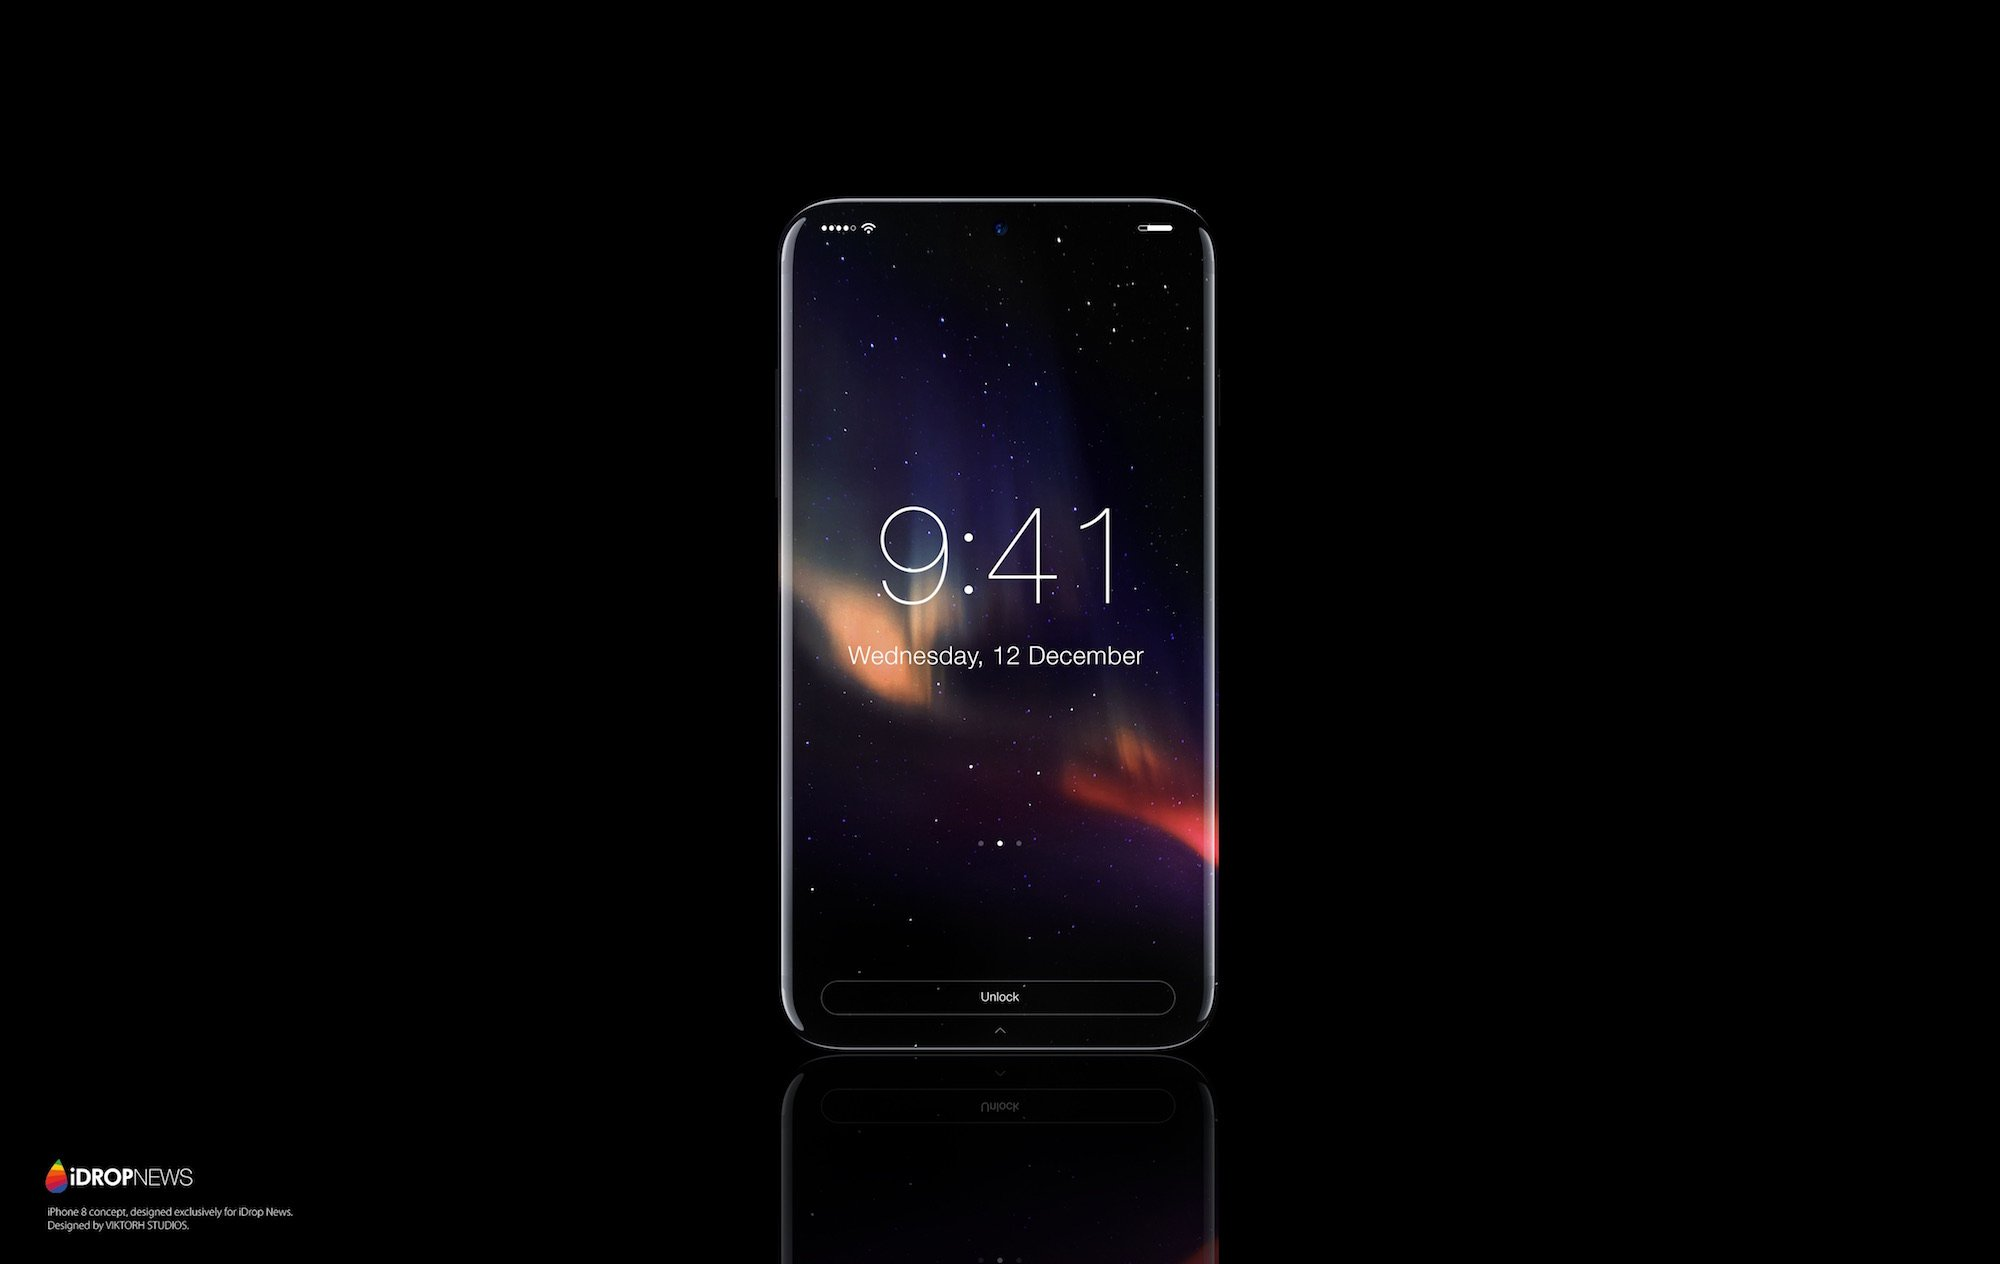 iphone-8-concept-design-no-frame_08